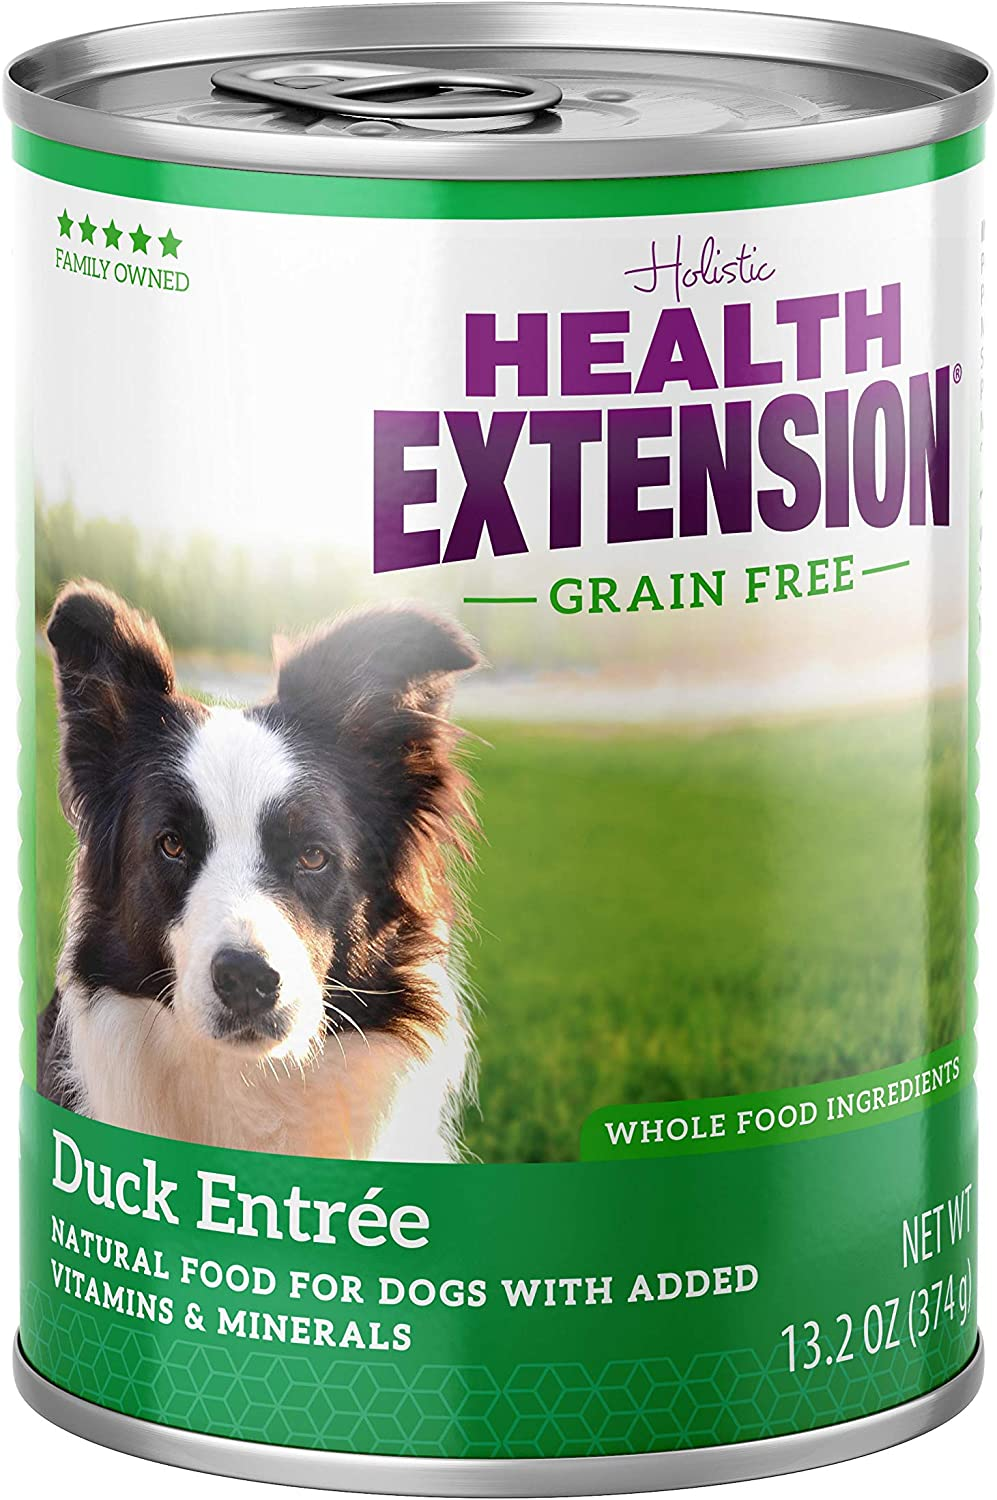 Health Extension Grain Free Duck Entree Canned Wet Dog Food - (12) 13.2 Oz Cans